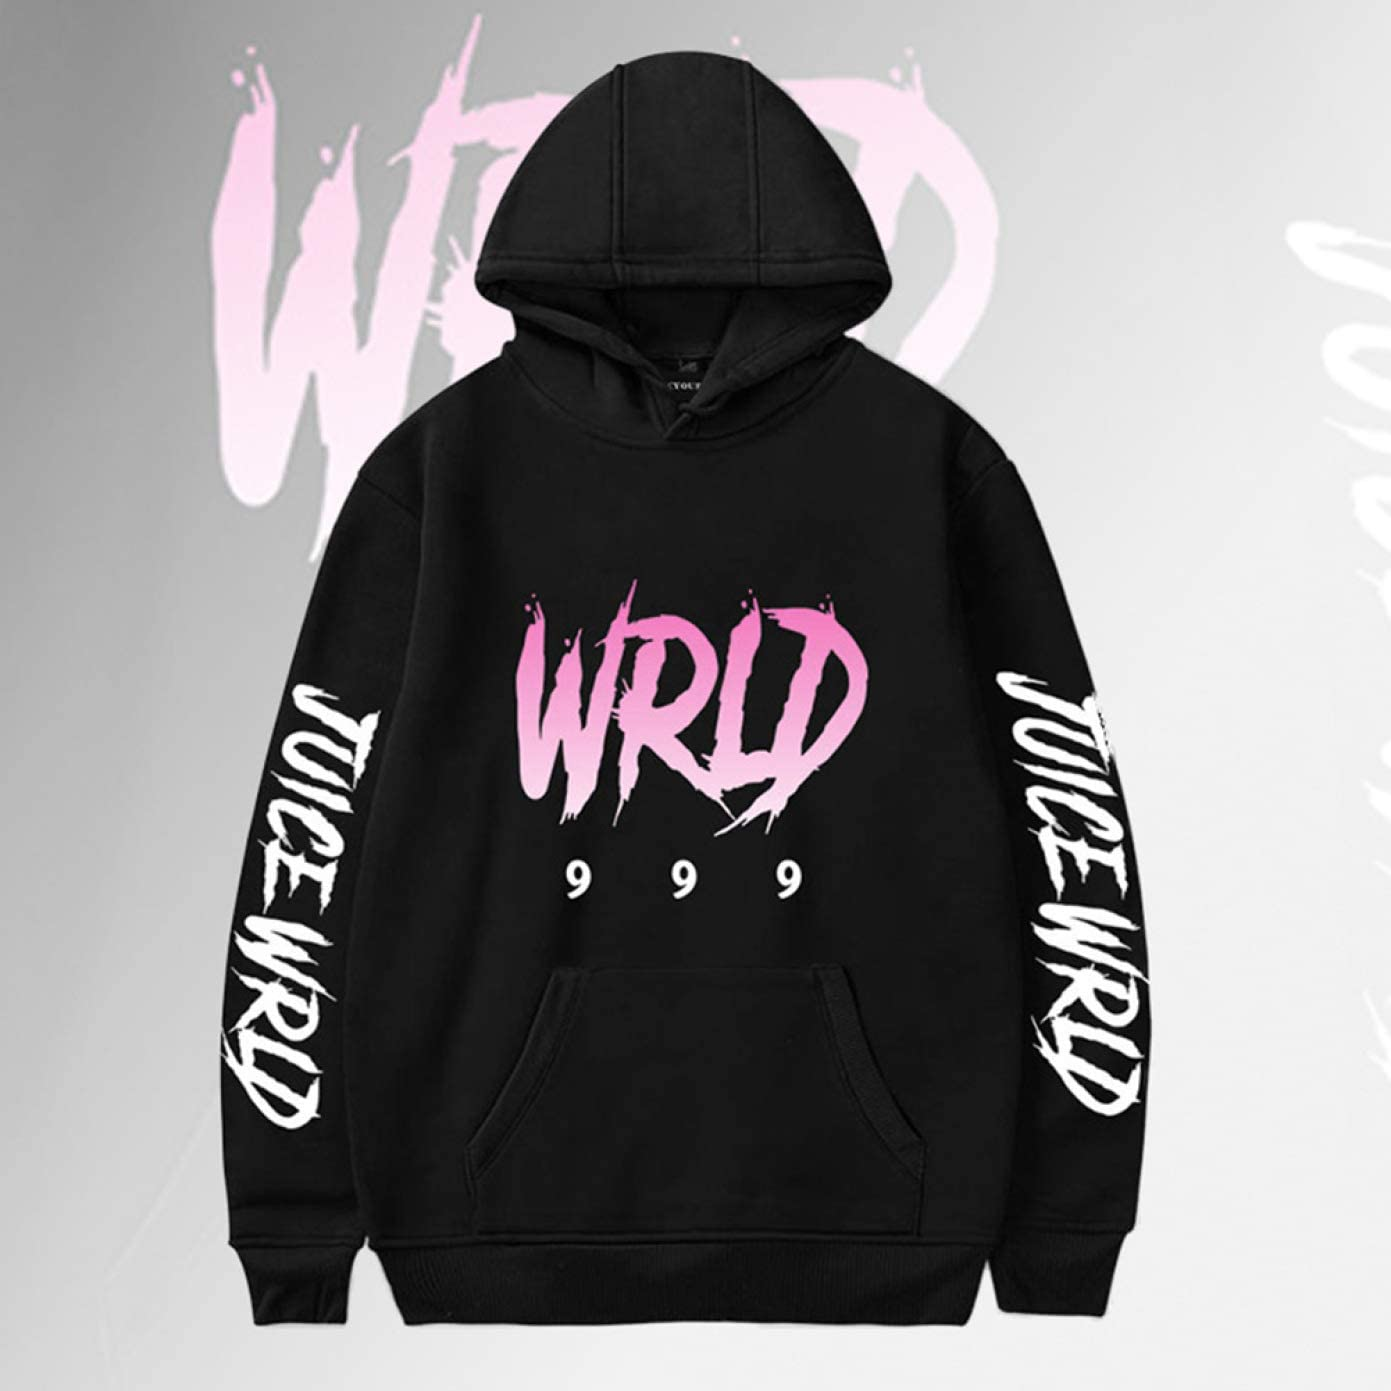 Angshi Useful New Juice Wrld Printed Pullover Sweatshirts Long Sleeve Letter Printing Casual Hoodie Tops